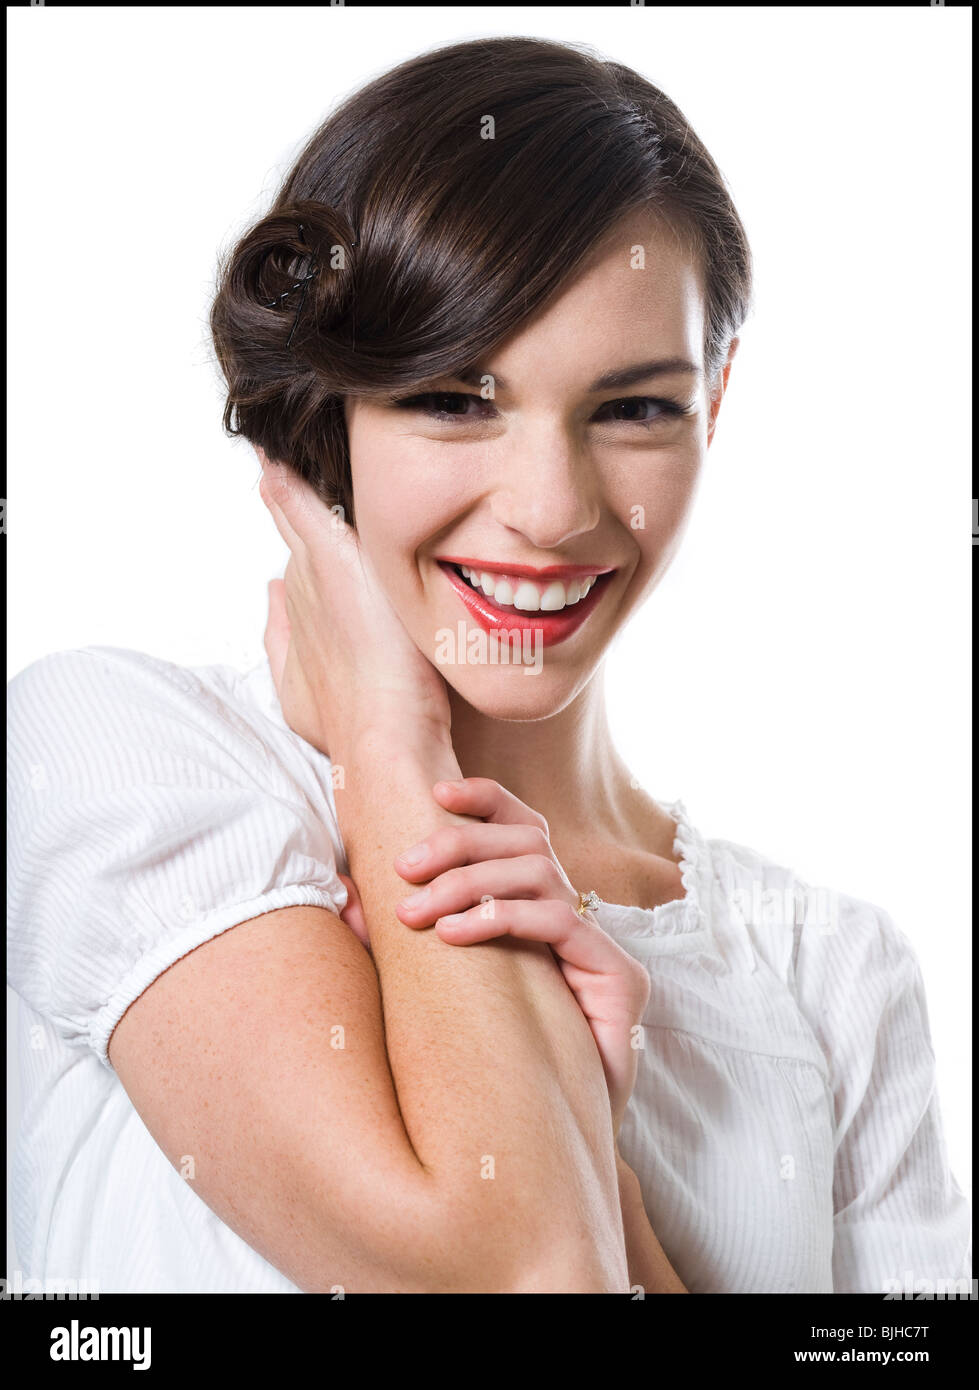 woman with her hair up in a classic hollywood hairstyle reminiscent of the 1940s - Stock Image